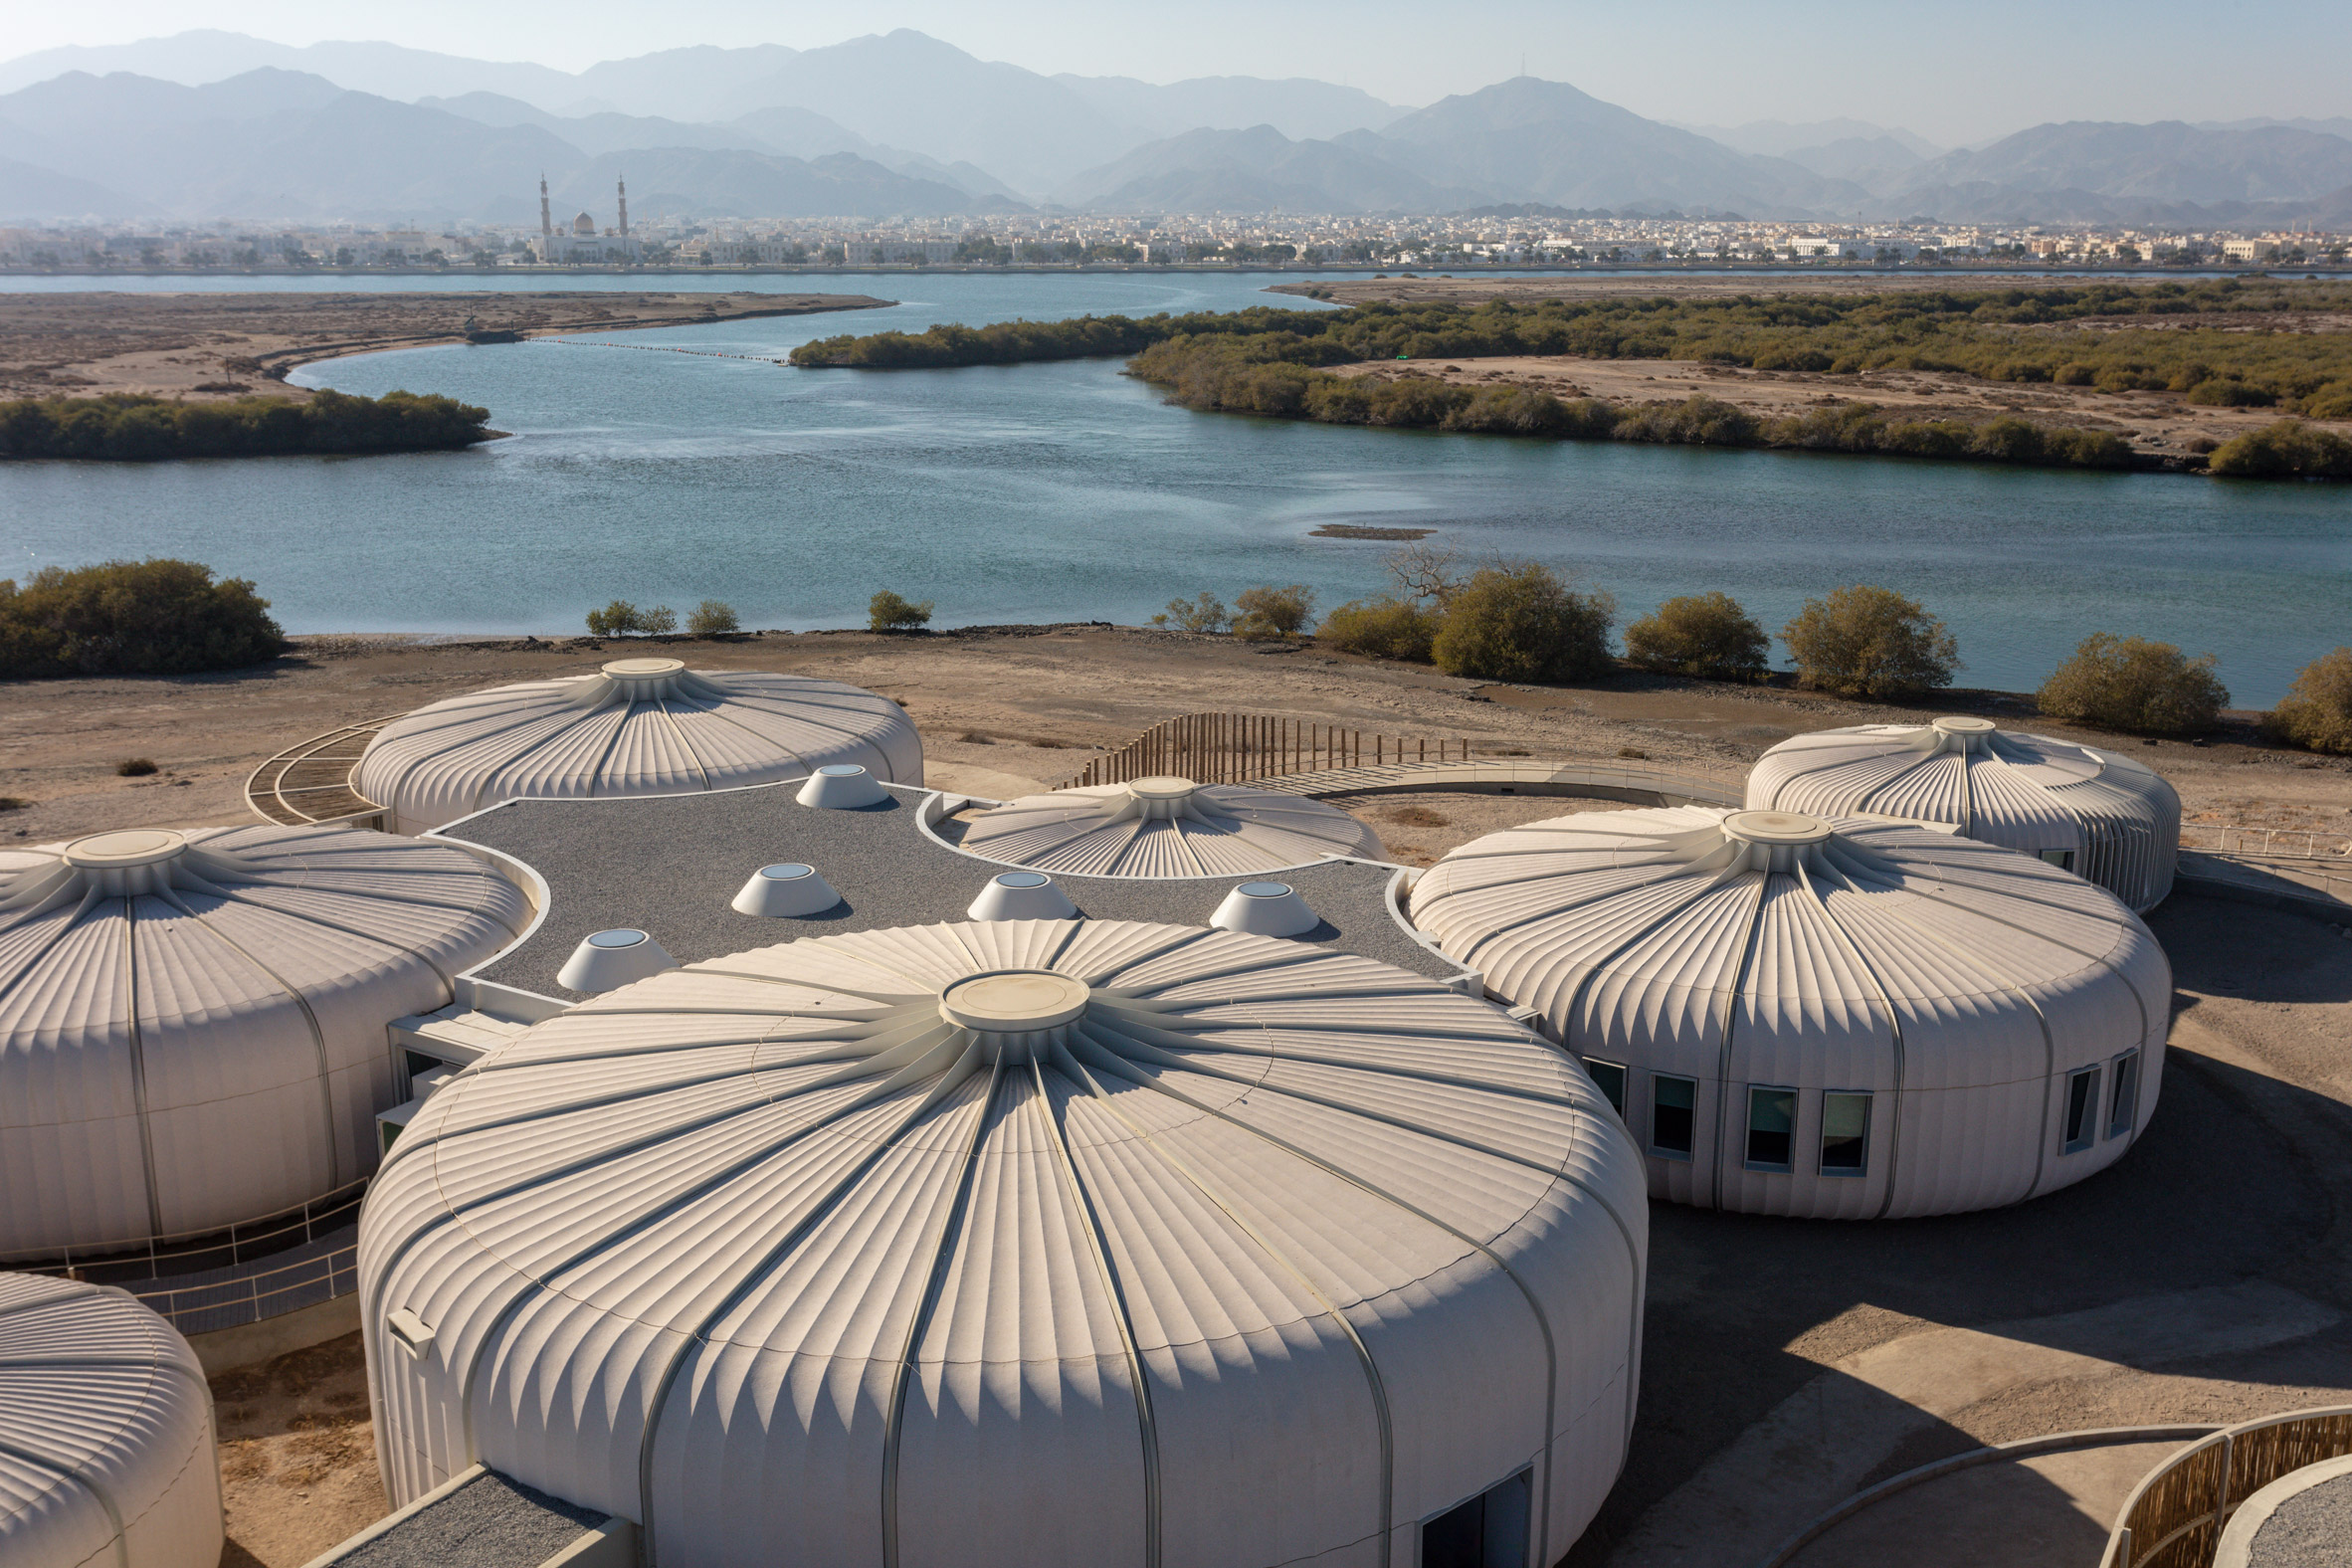 Concrete pods in Sharjah